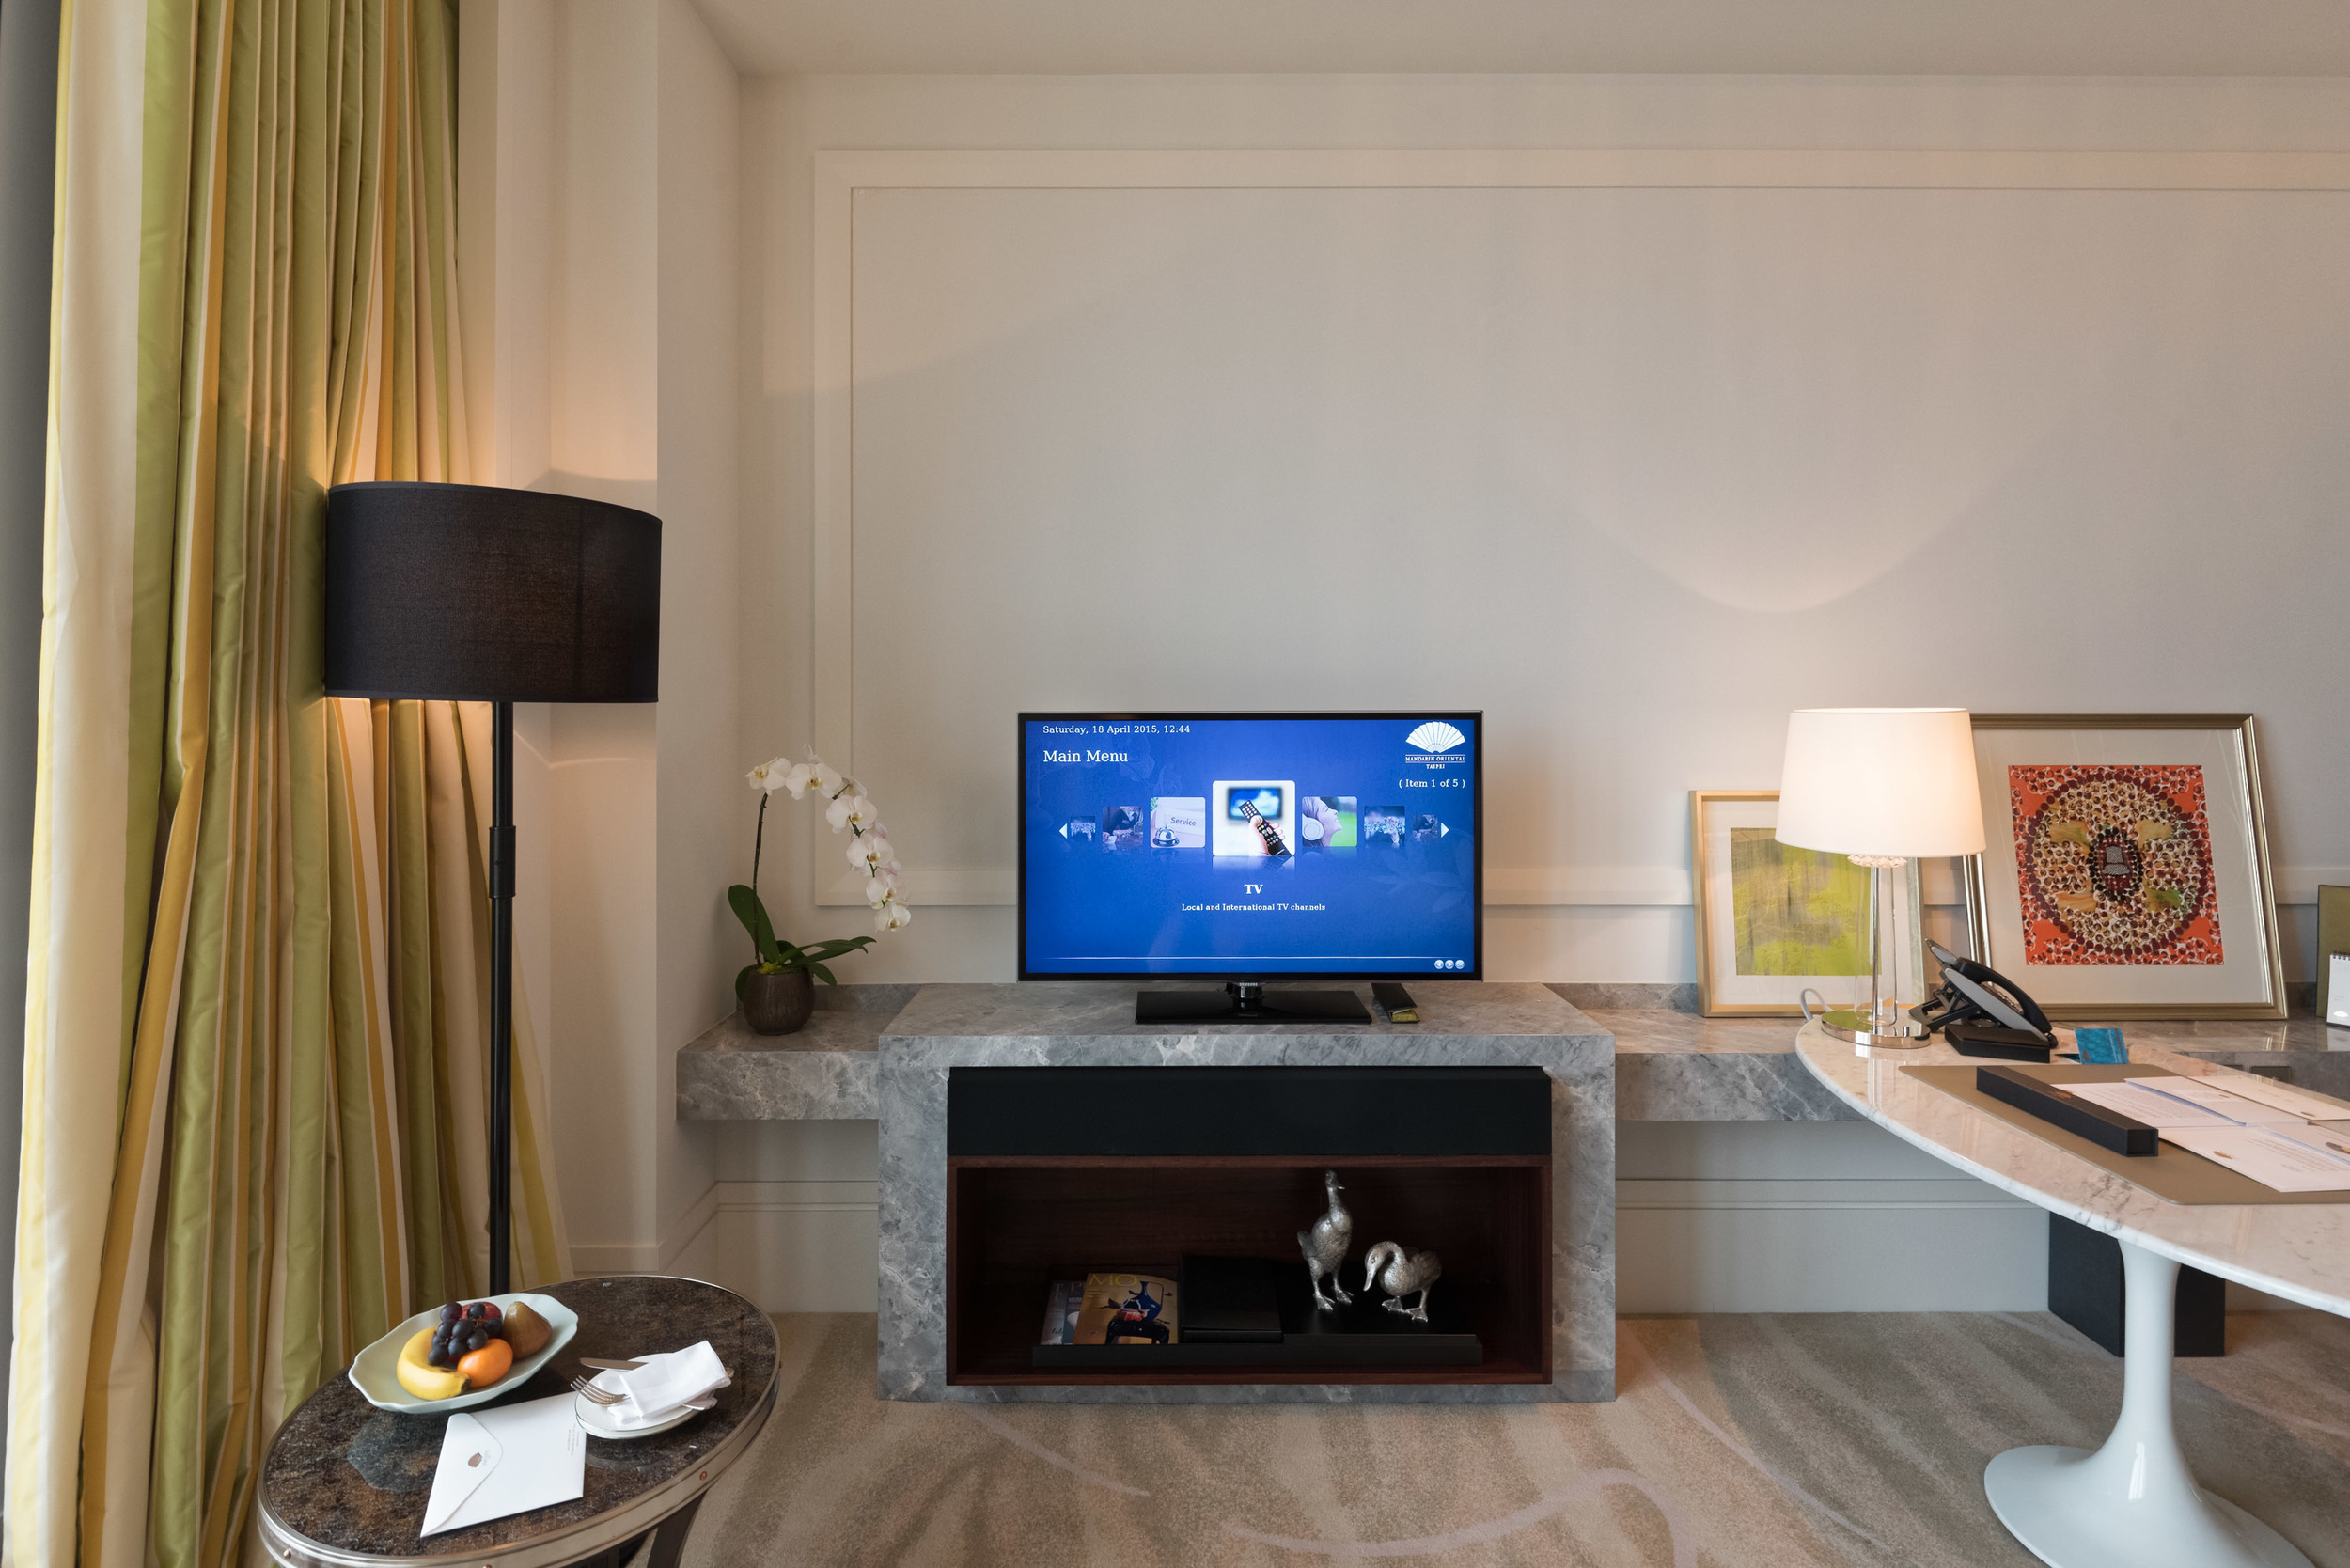 LED TV and Entertainment System at the Mandarin Oriental, Taipei